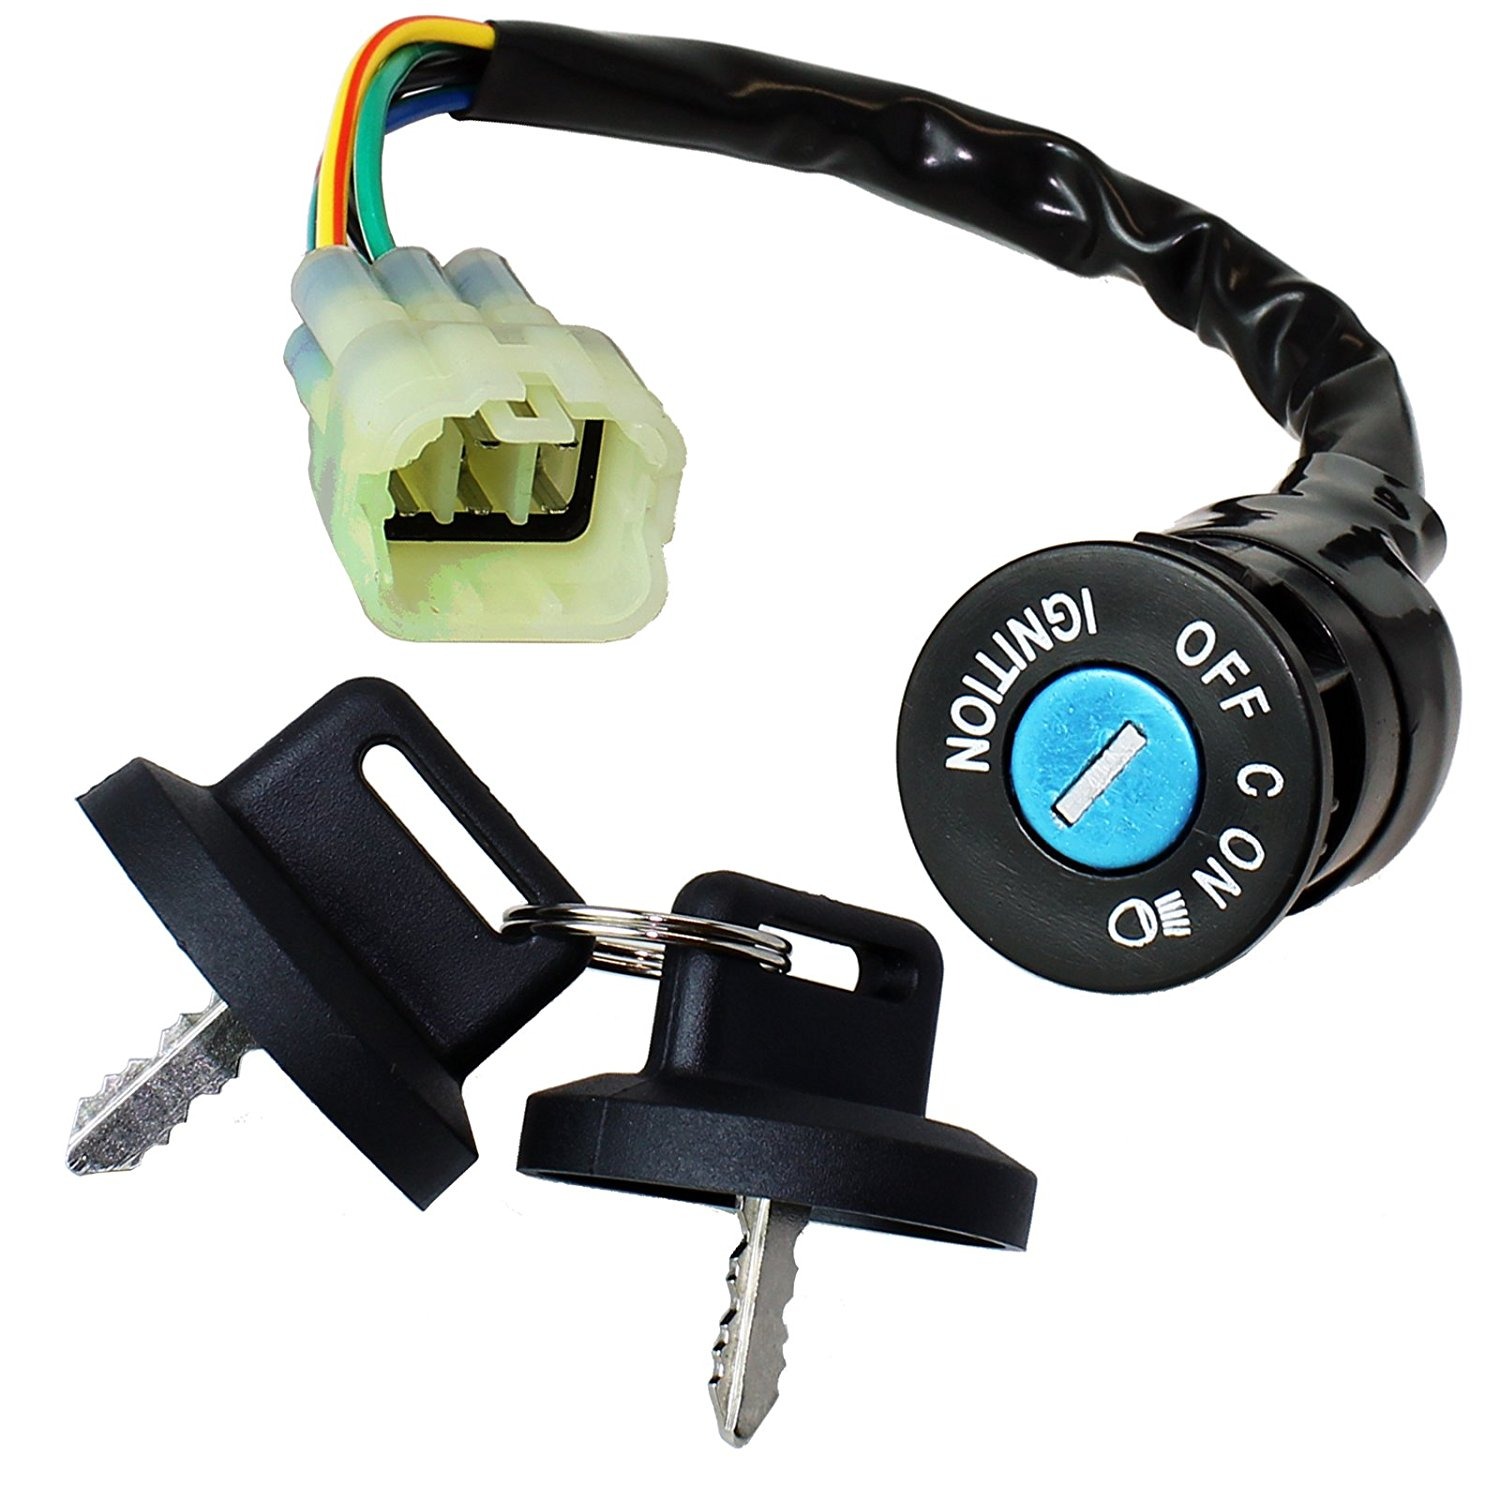 Ignition Key Switch Fits CAN AM BOMBARDIER DS 650 DS650 BAJA X 2004 CAN-AM ATV